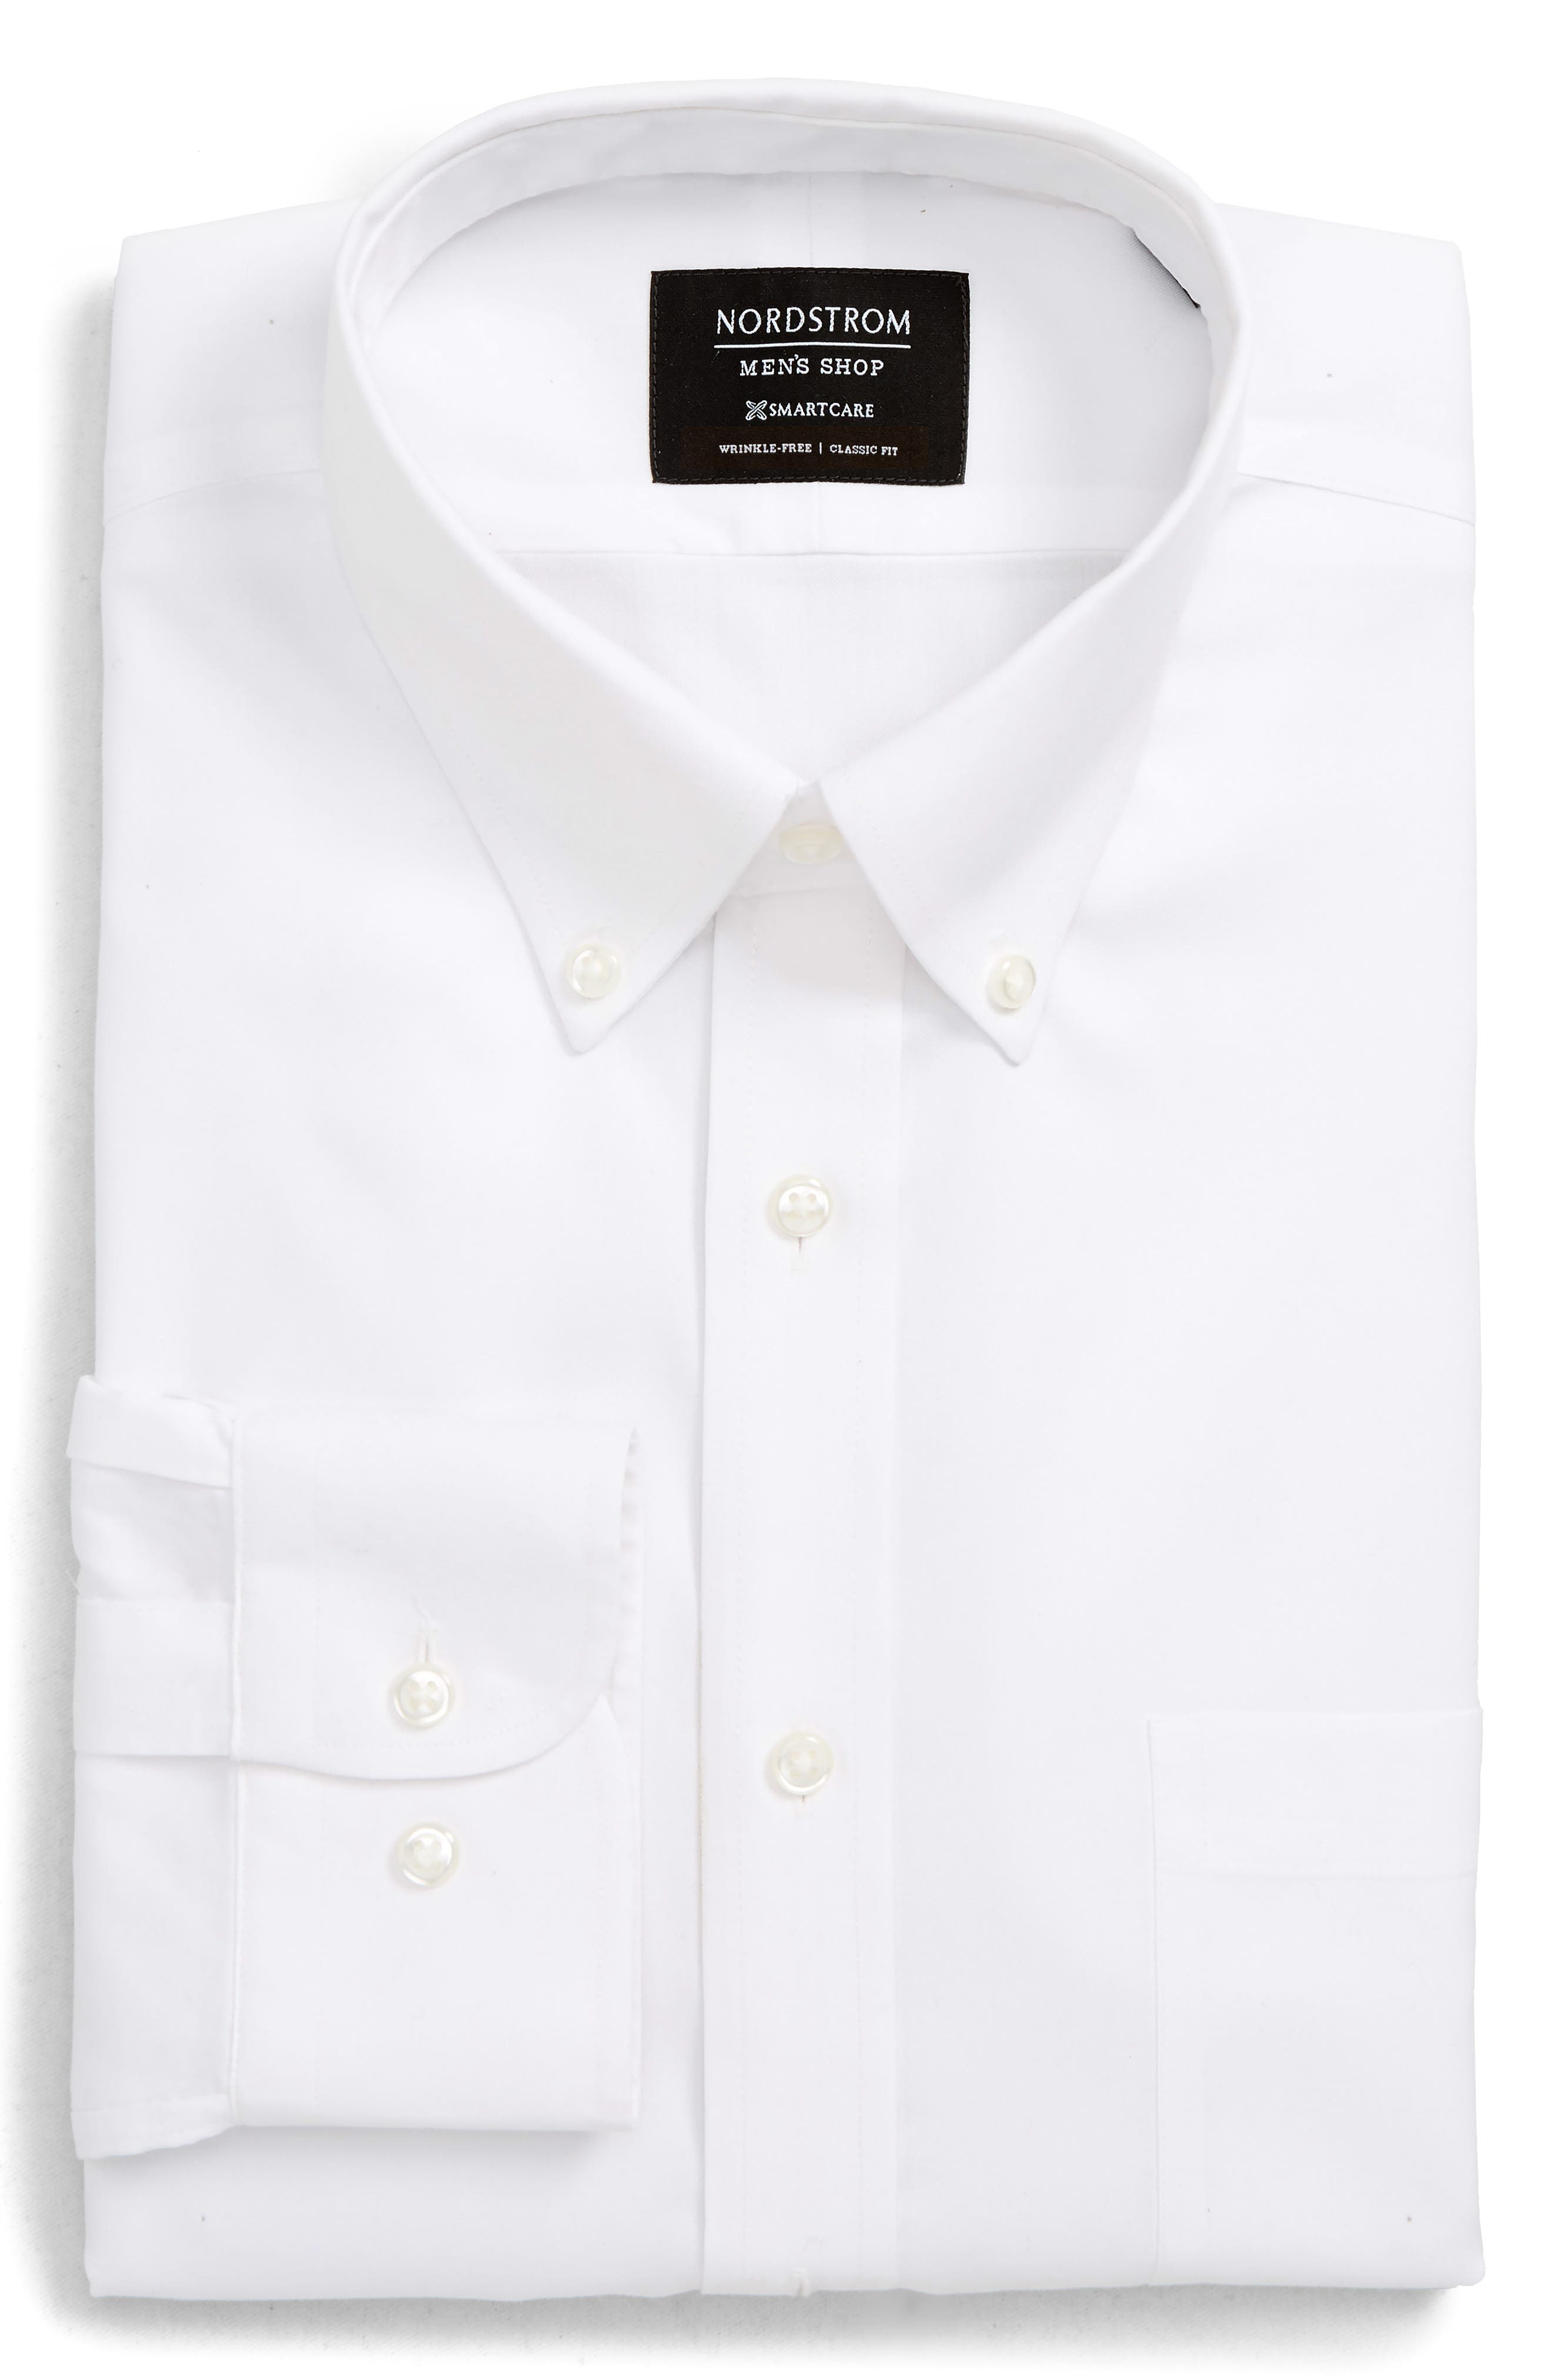 Nordstrom Shop Smartcare(TM) Classic Fit Dress Shirt - White